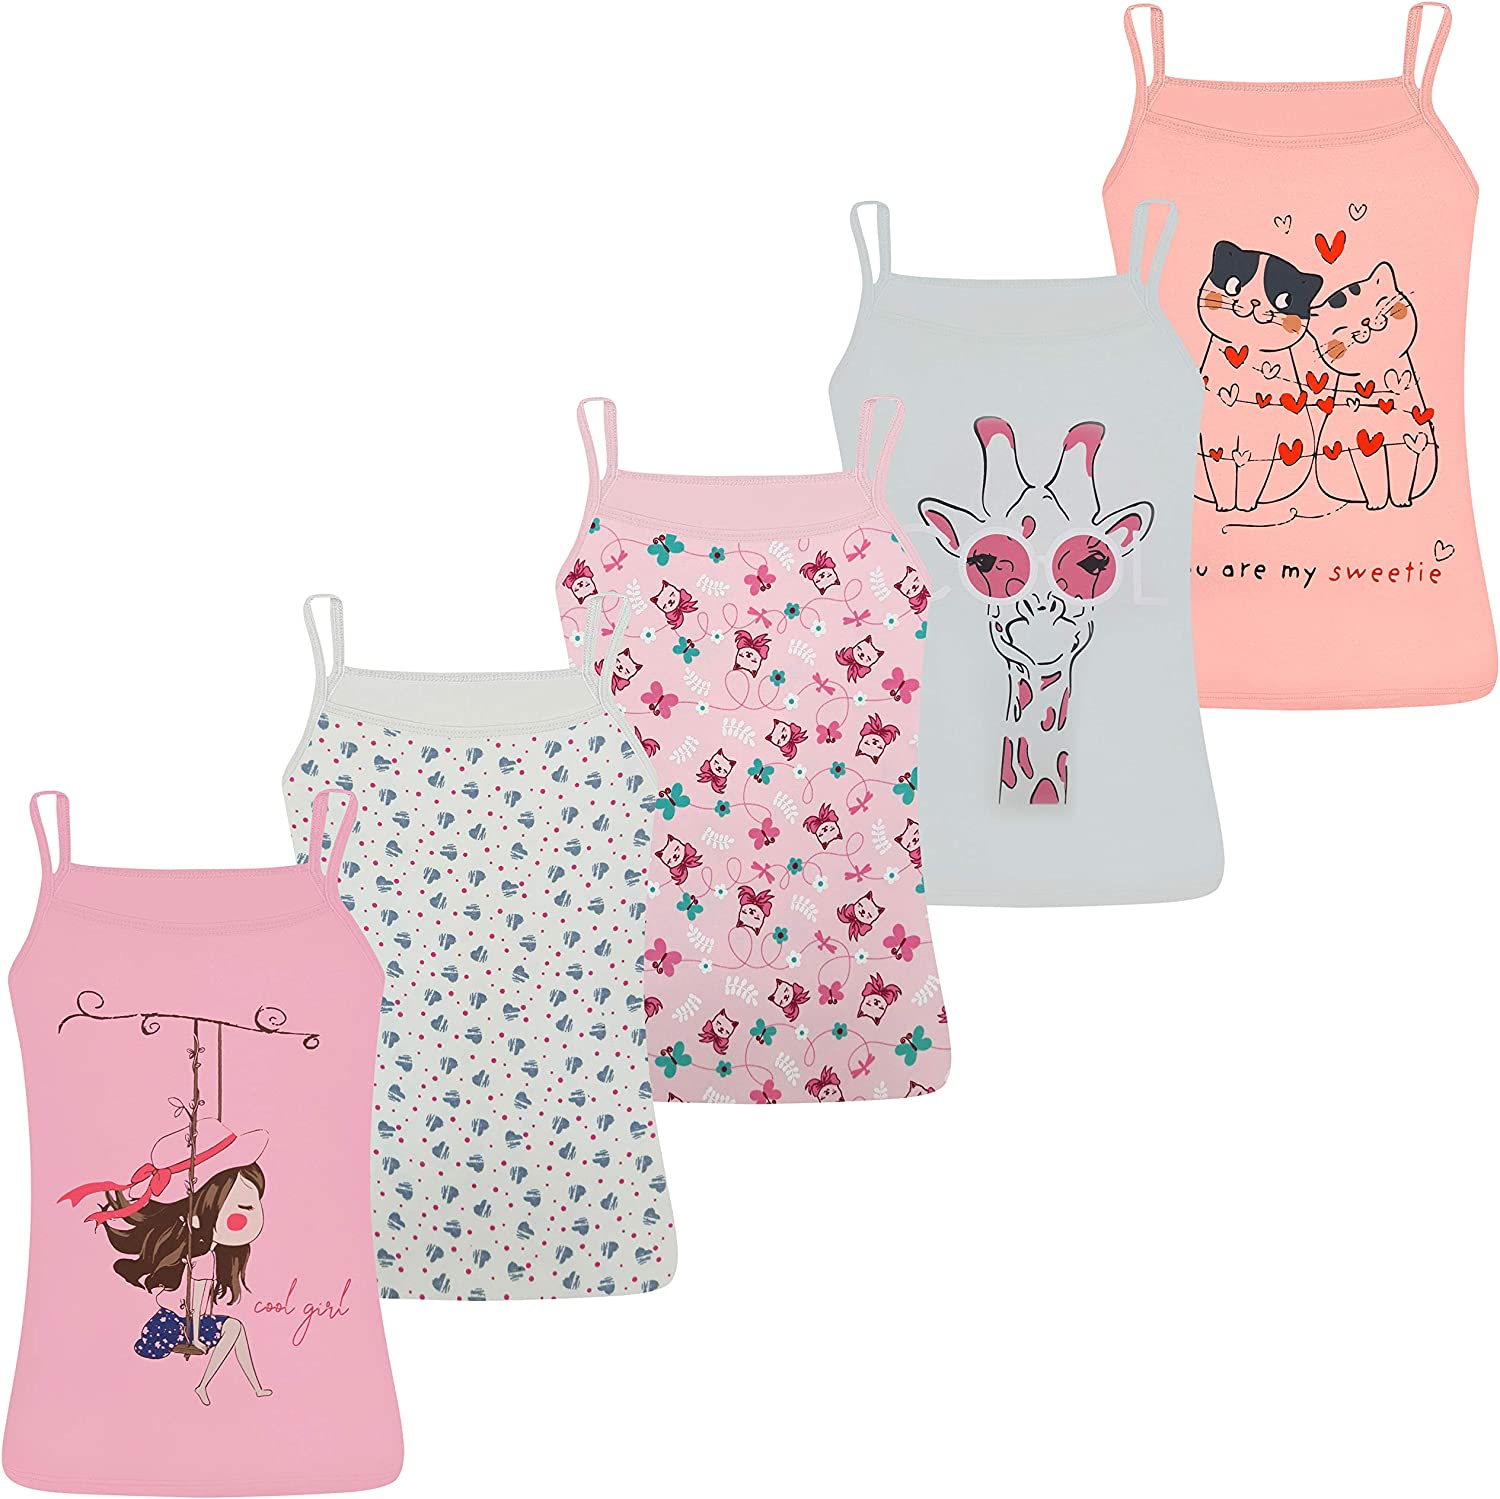 Pack of 5 Comfortable and Soft on The Skin LOREZA /® 5 Girls Vests Sleeveless Spaghetti Strap Tops with Different Motifs Cotton